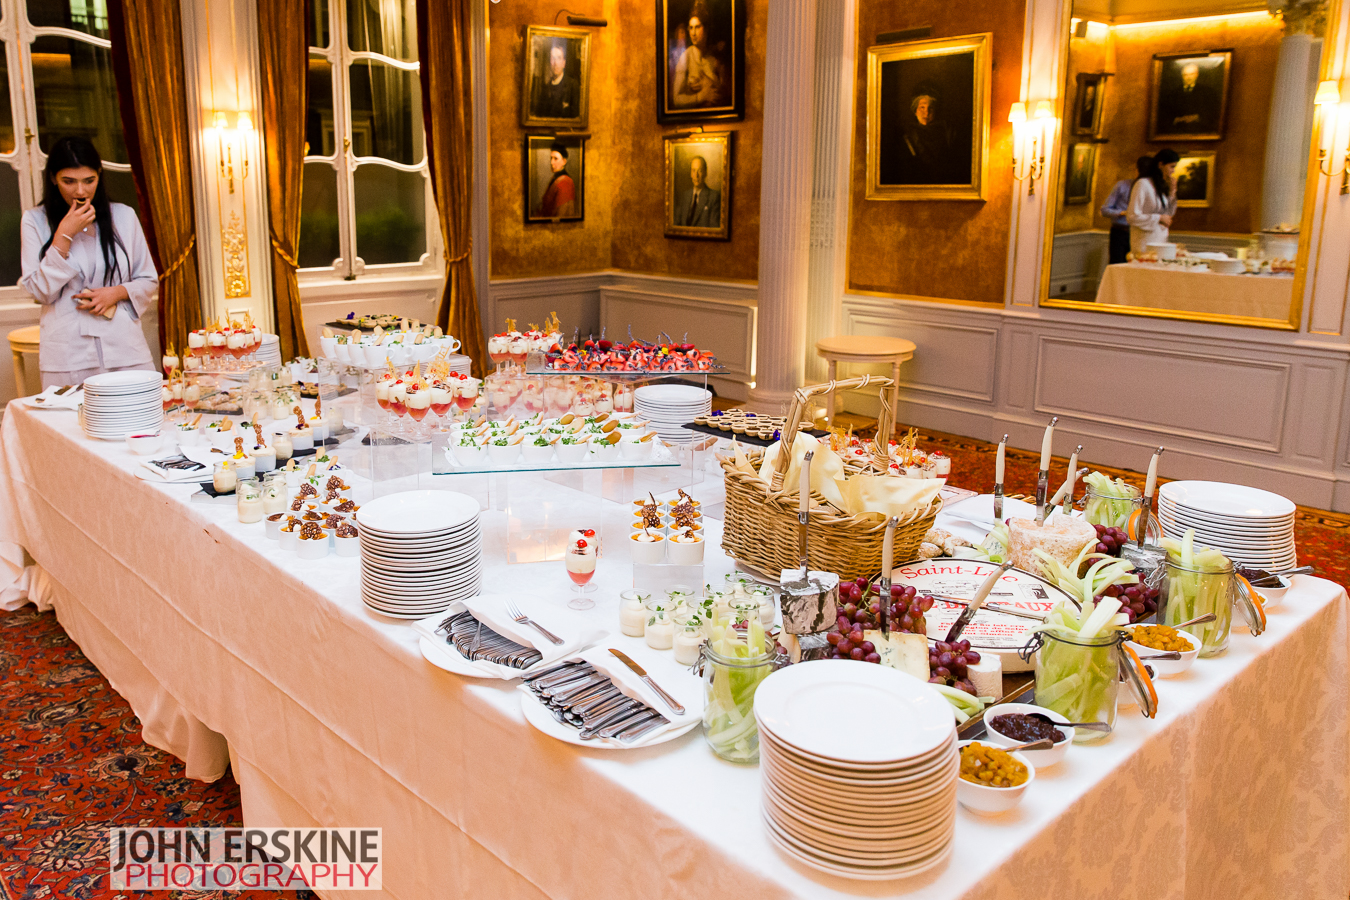 Unique Venues of London Mayfair Wedding Venue Dessert Table